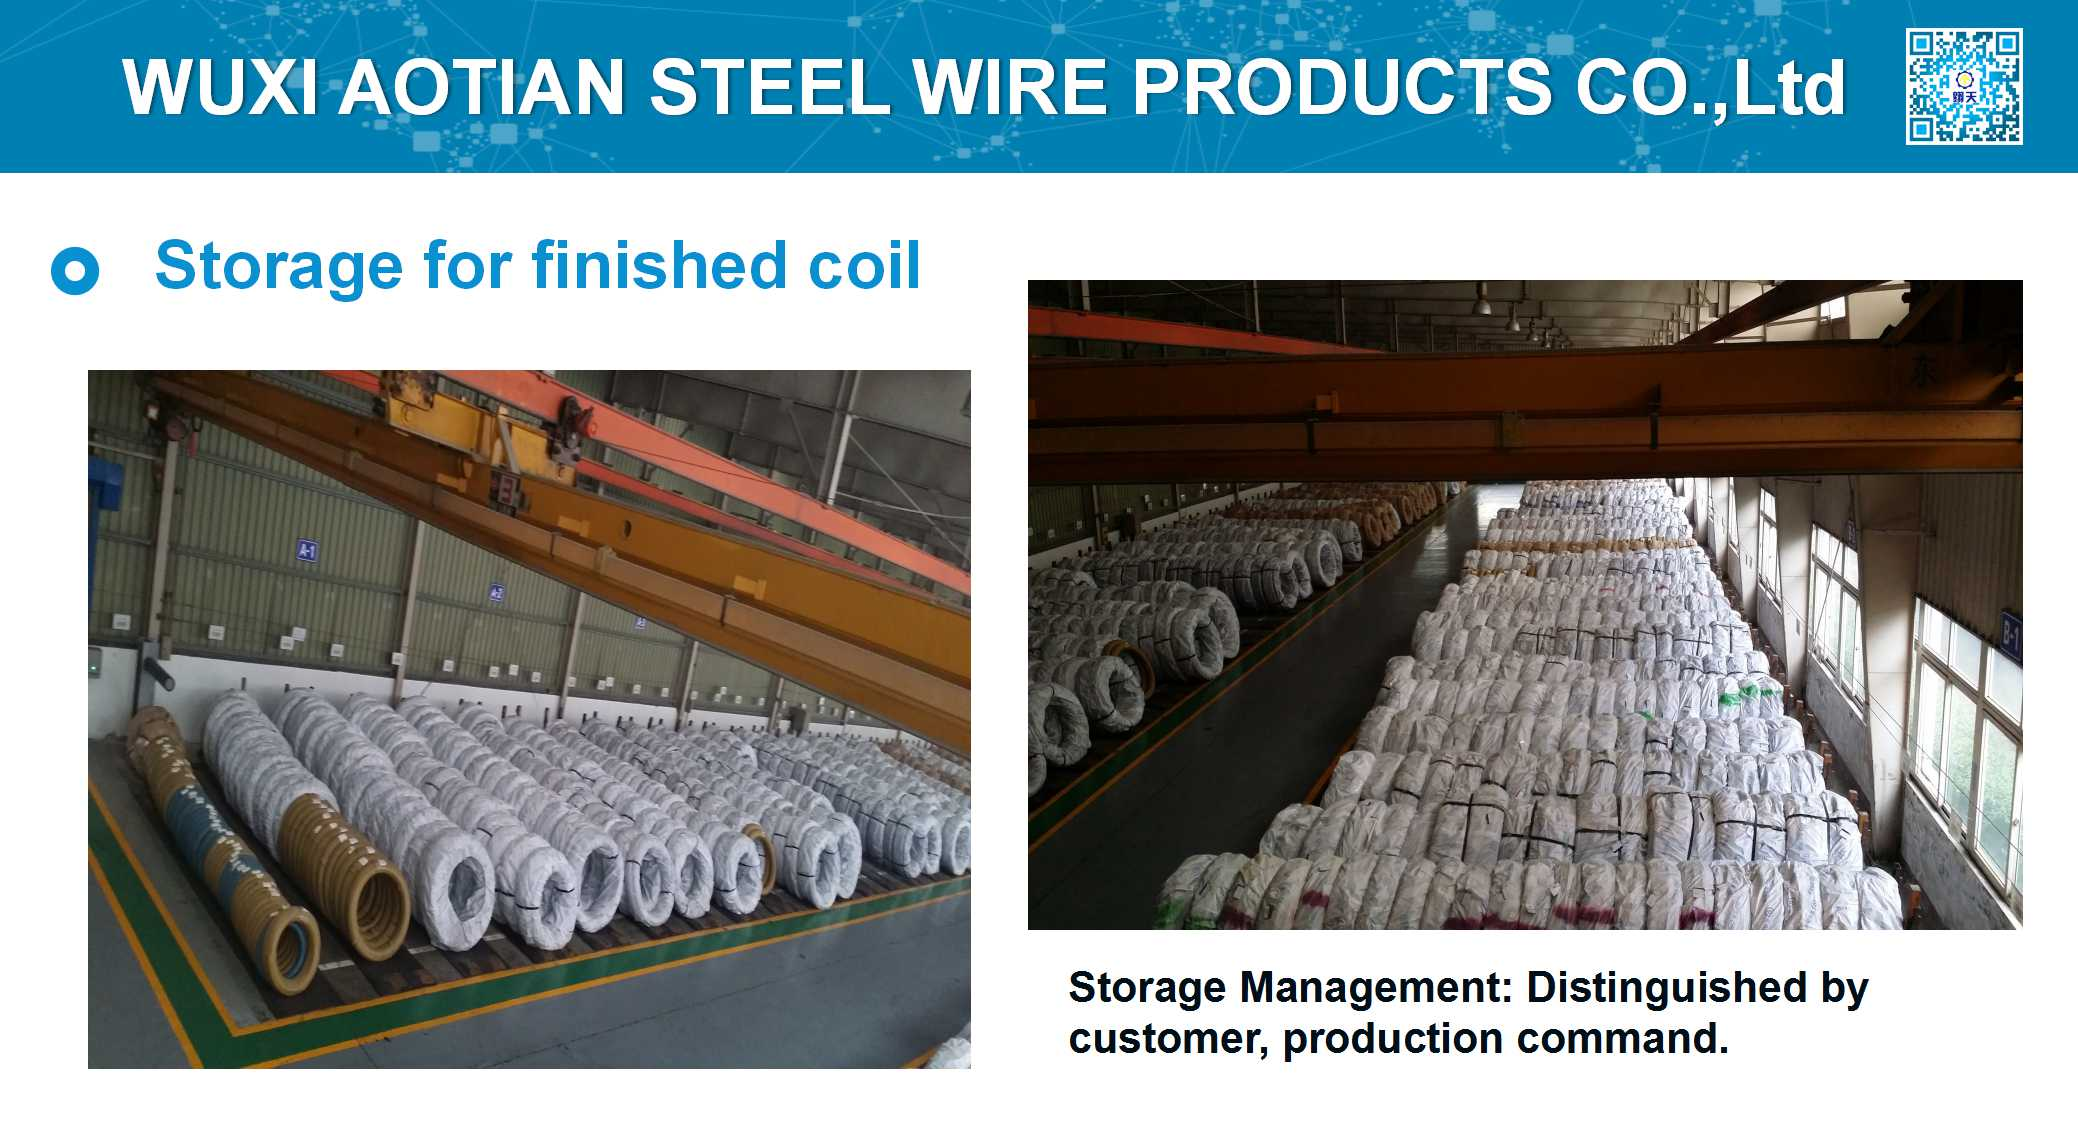 Storage of finished wire coil